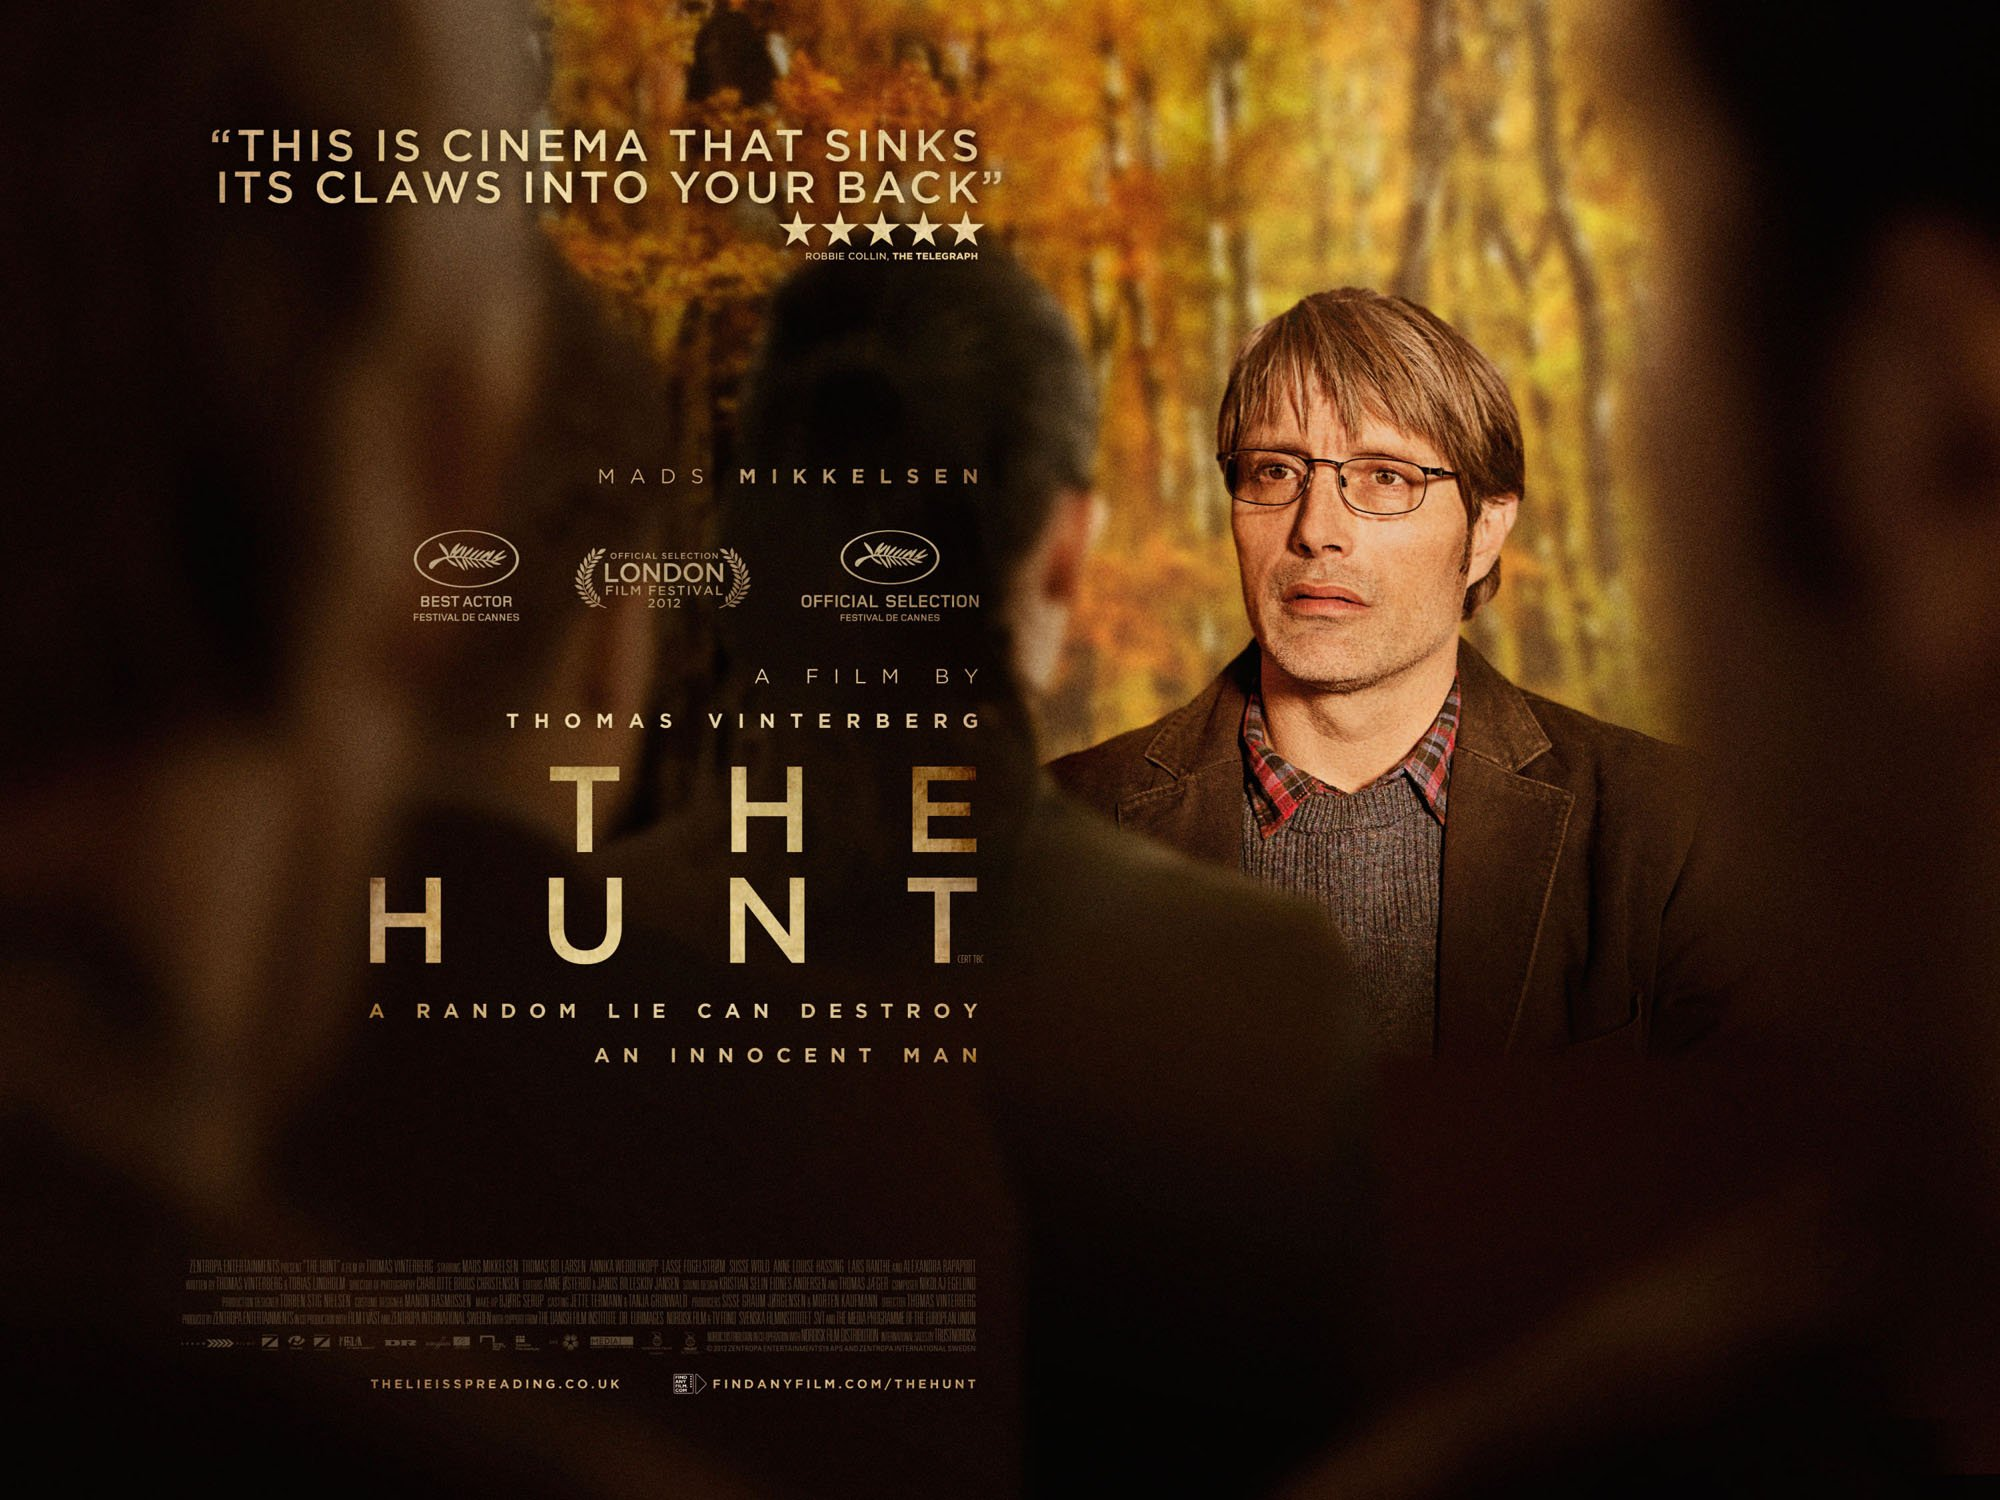 The Hunt is another one of the recent Mads Mikkelsen movies.